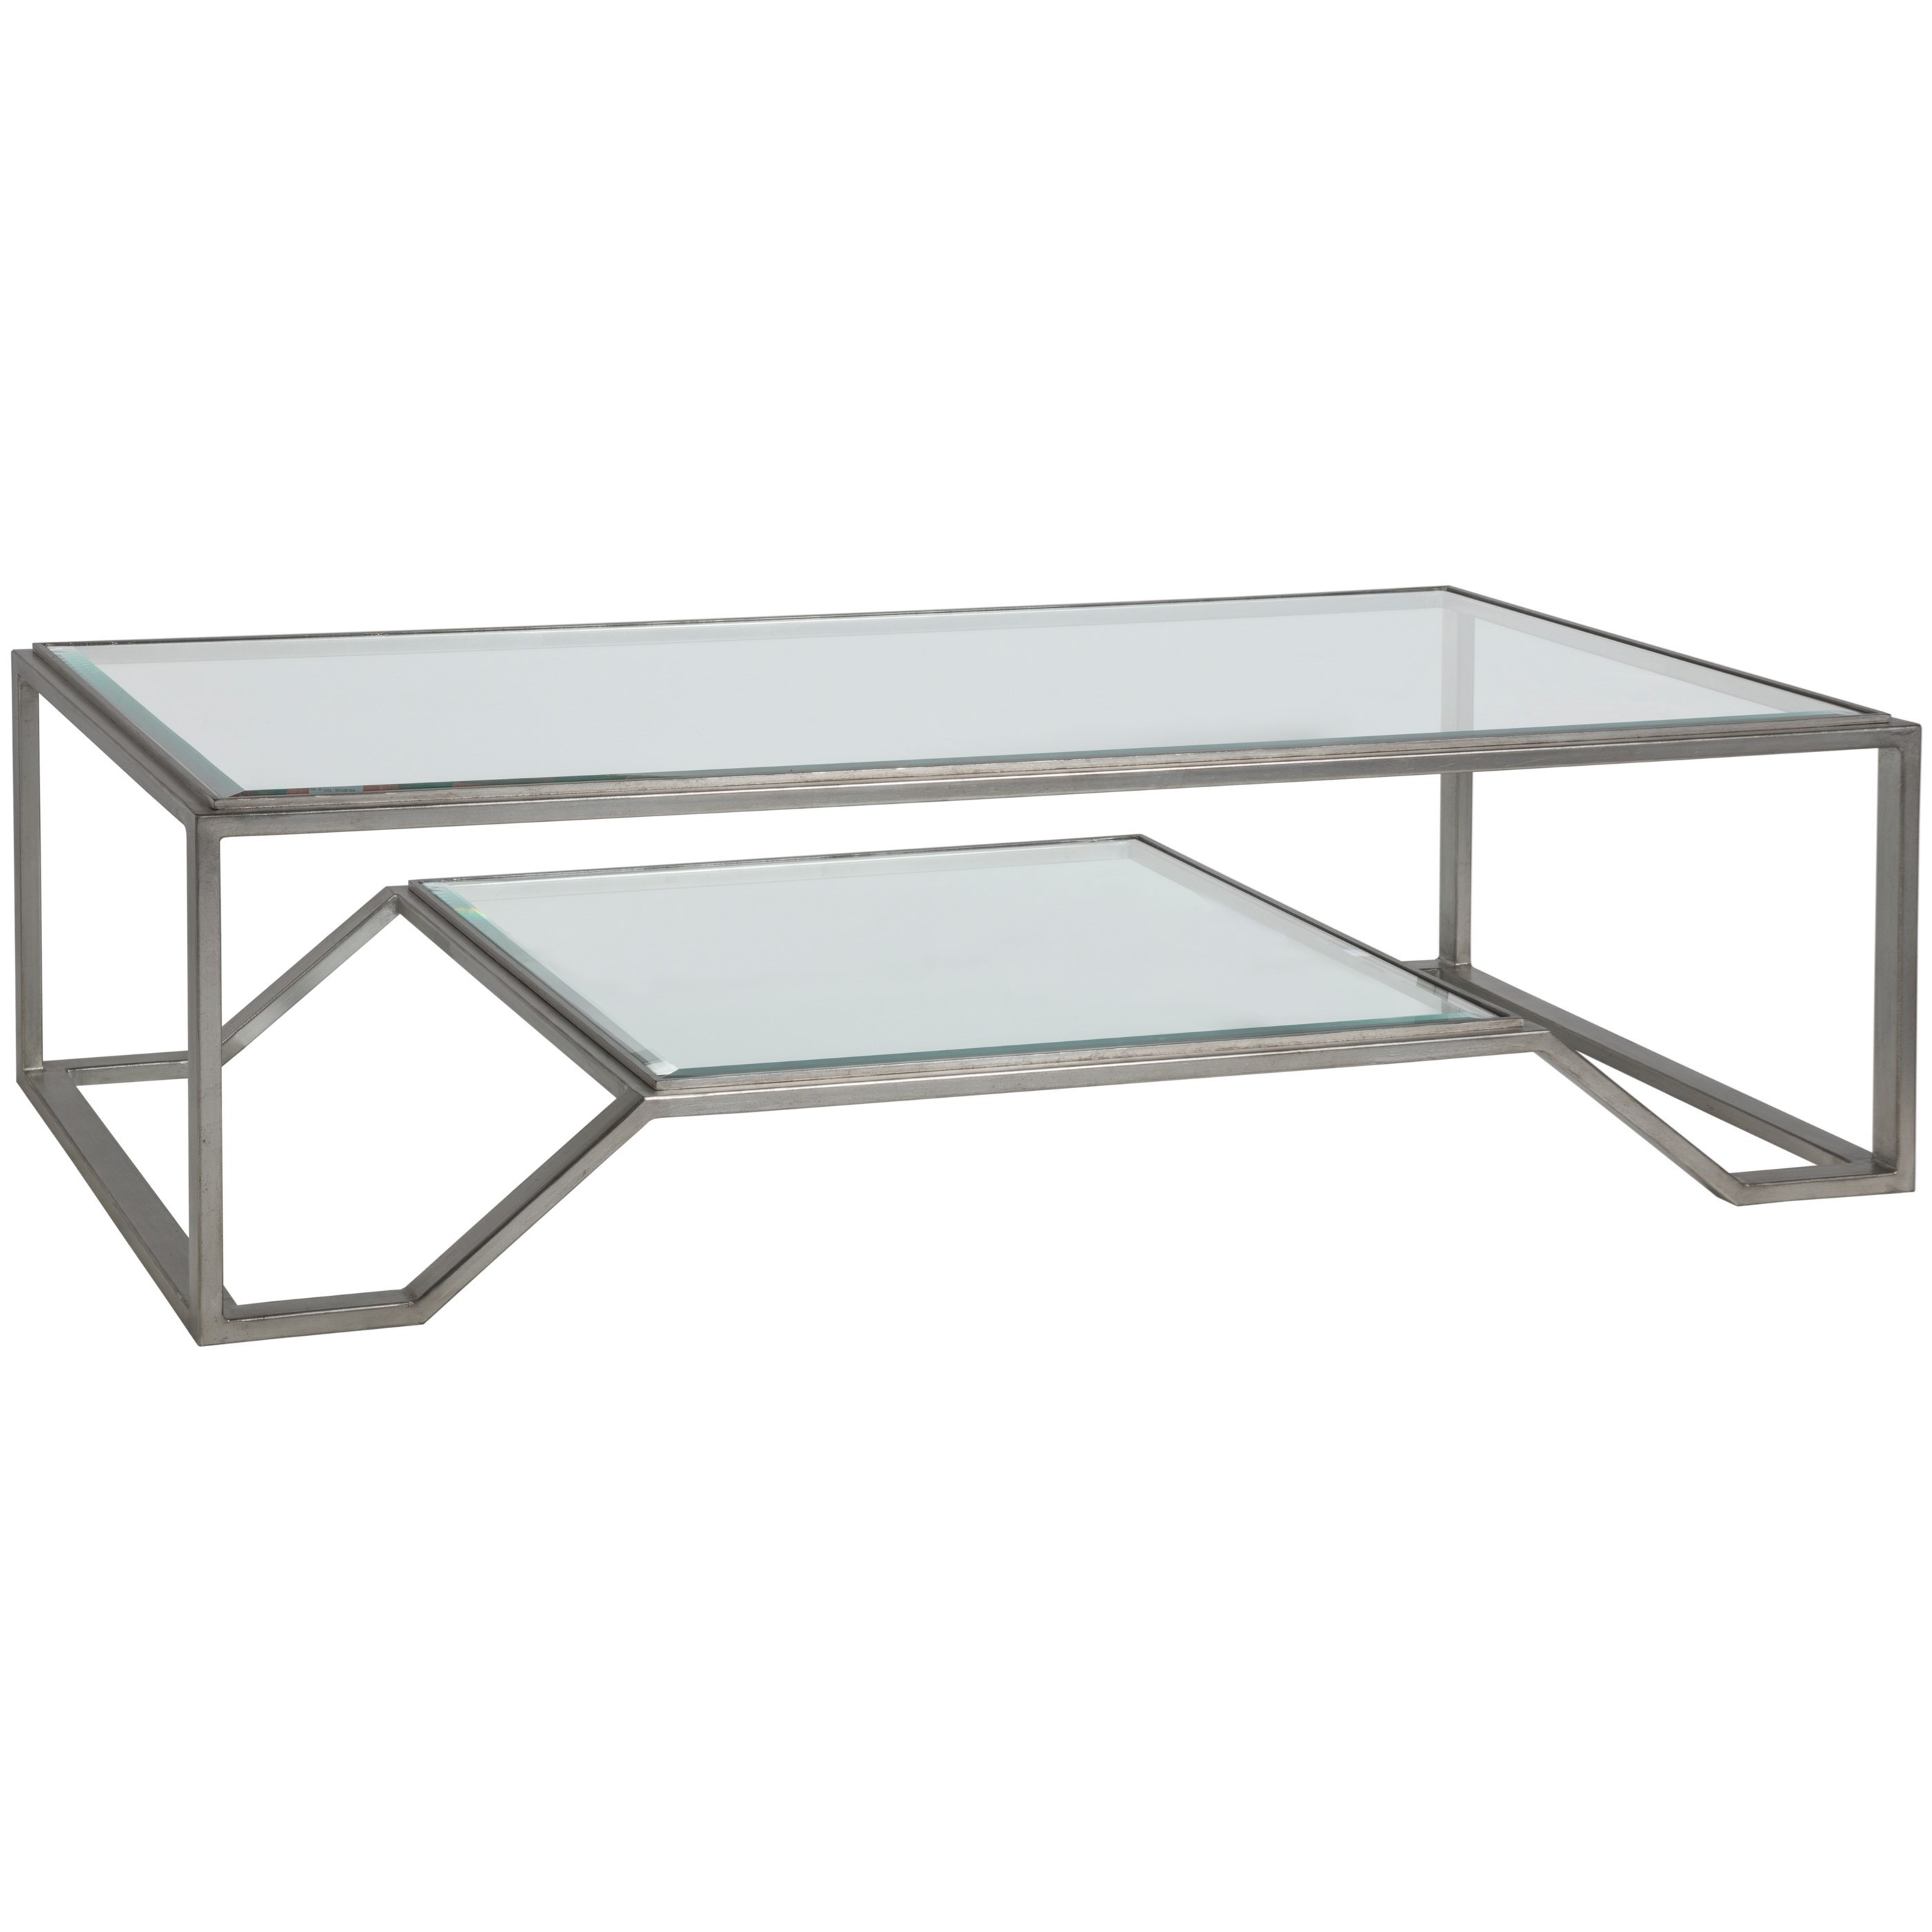 Artistica Metal Byron Rectangular Cocktail Table by Artistica at Baer's Furniture